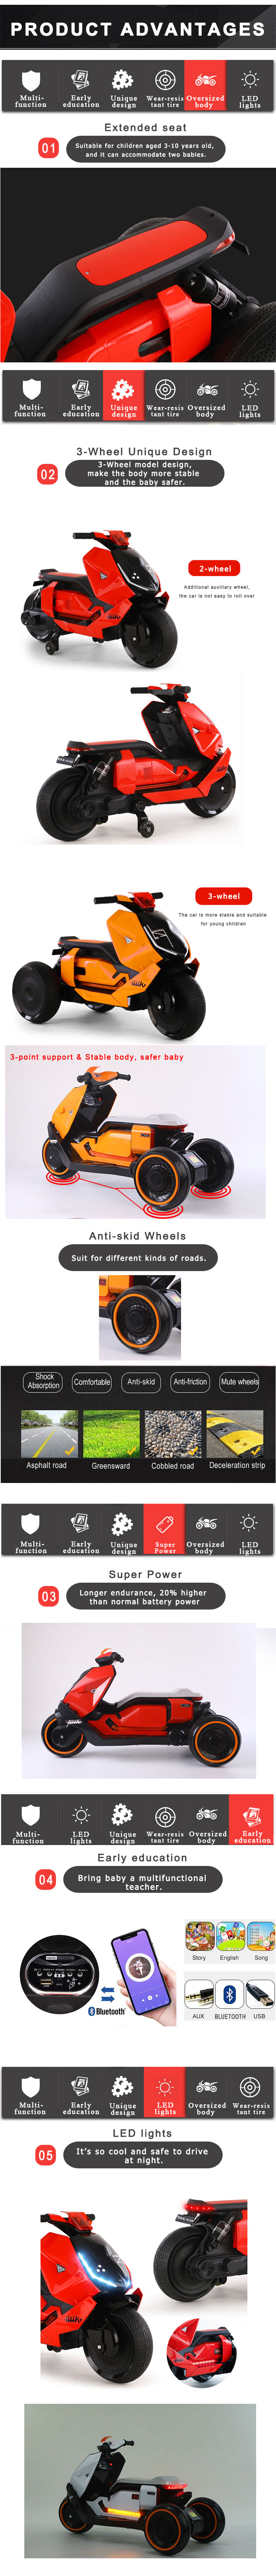 2020 Factory Hot Selling Mini Motorcycle Kids Ride on Toy Motorbike for Kids